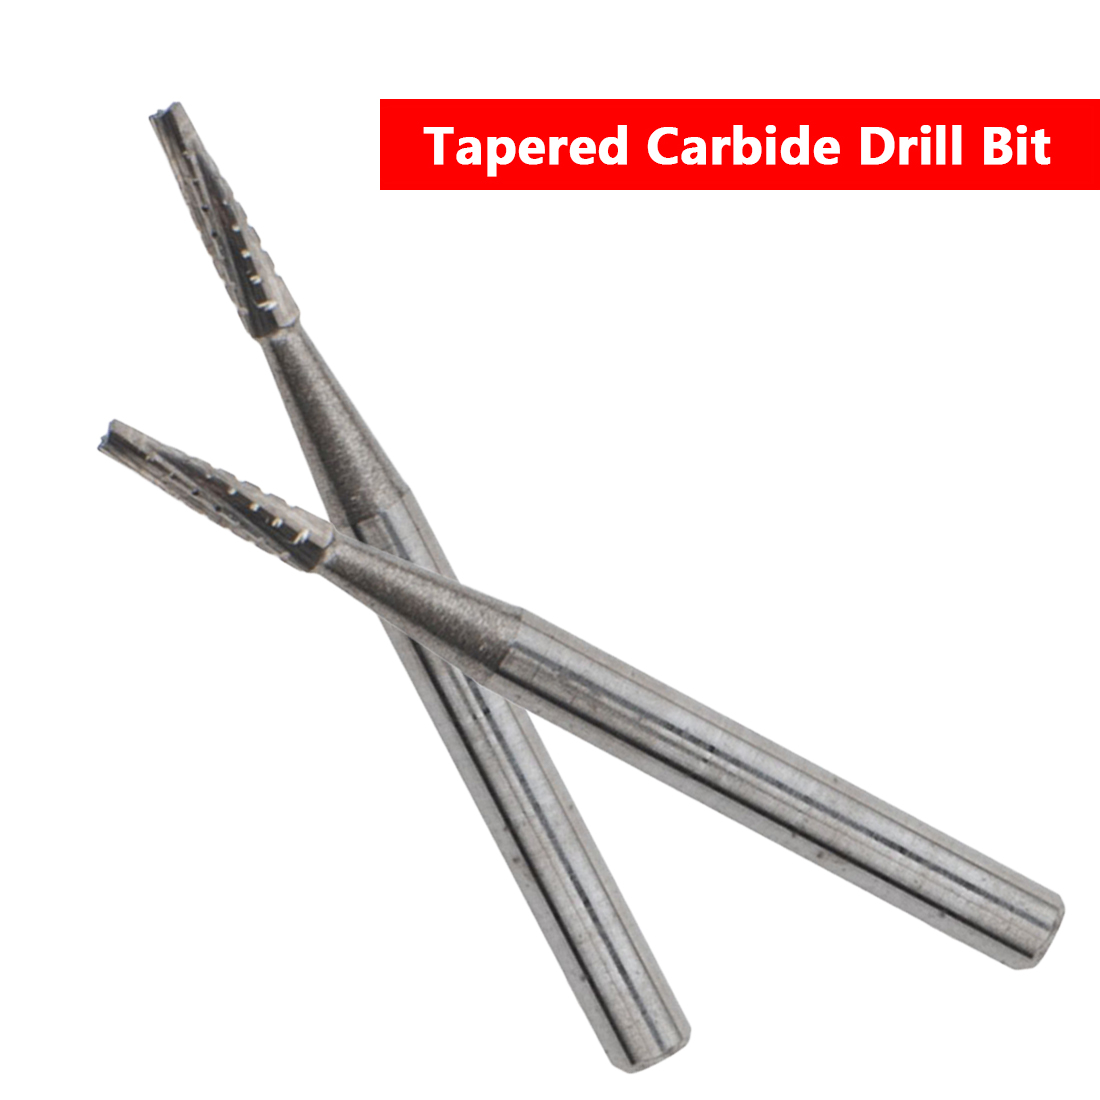 Tapered Carbide Drill Bit 1mm Diameter DIY Car Glass Automobile Windshield Repair Tool For Auto Glass Sliver